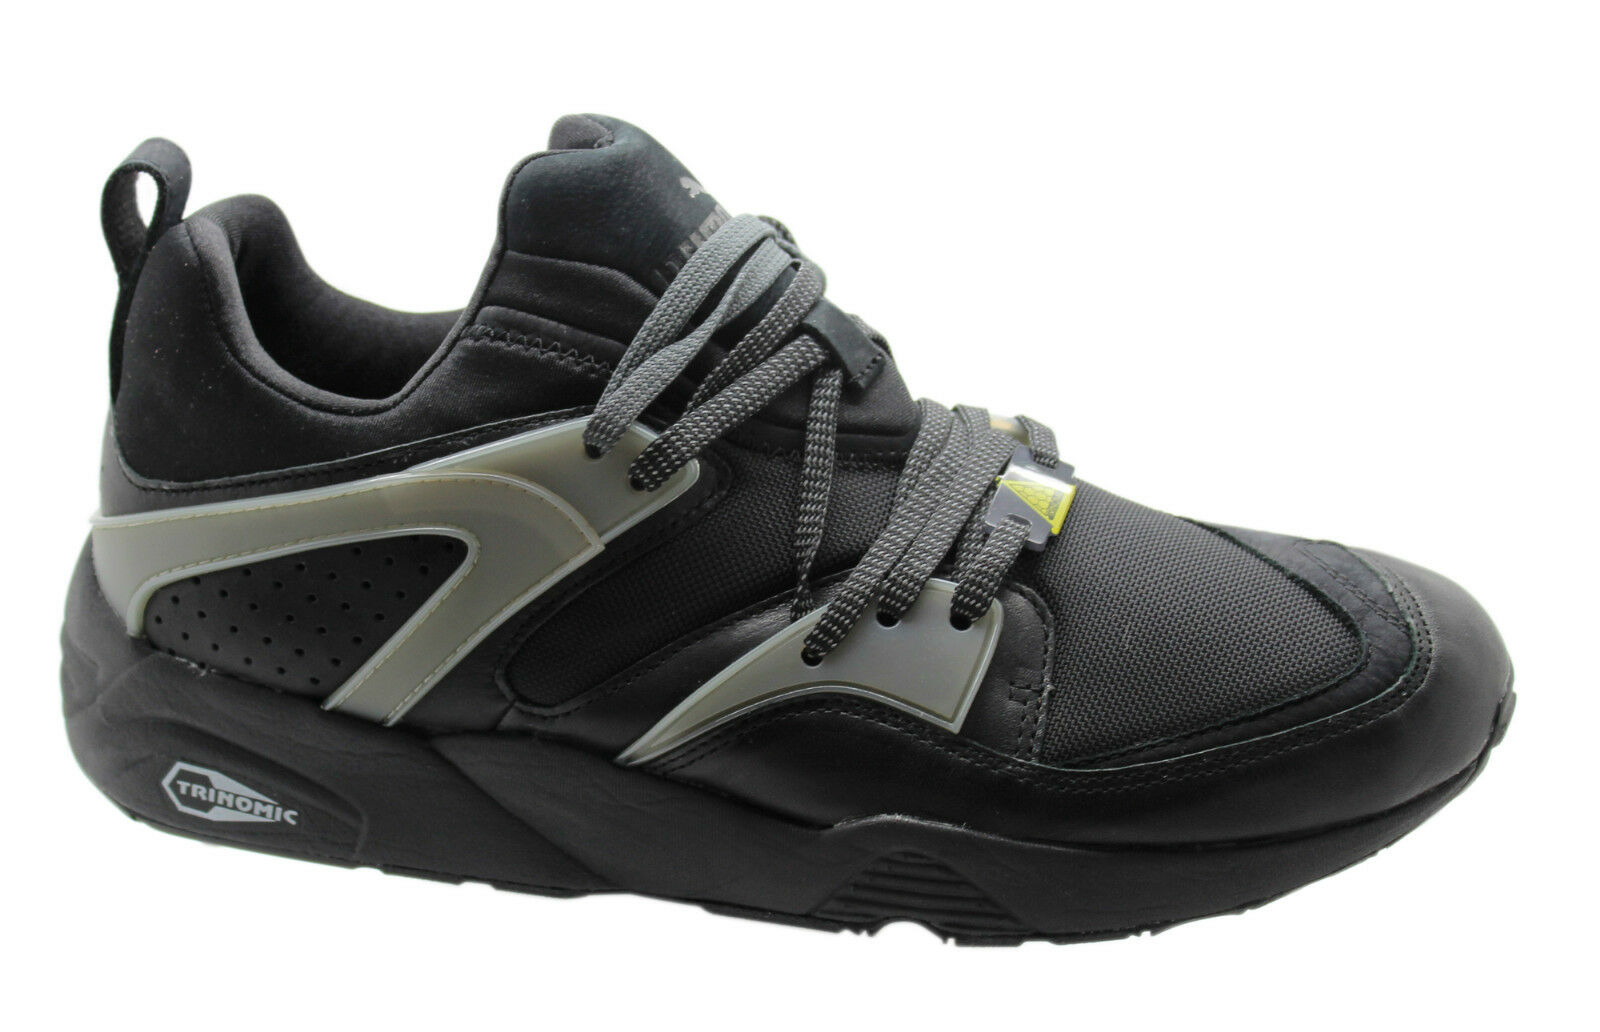 Puma Trinomic Blaze of glory scarpe in pelle mens FORMATORI NERO 358818 01 U96 The latest discount shoes for men and women